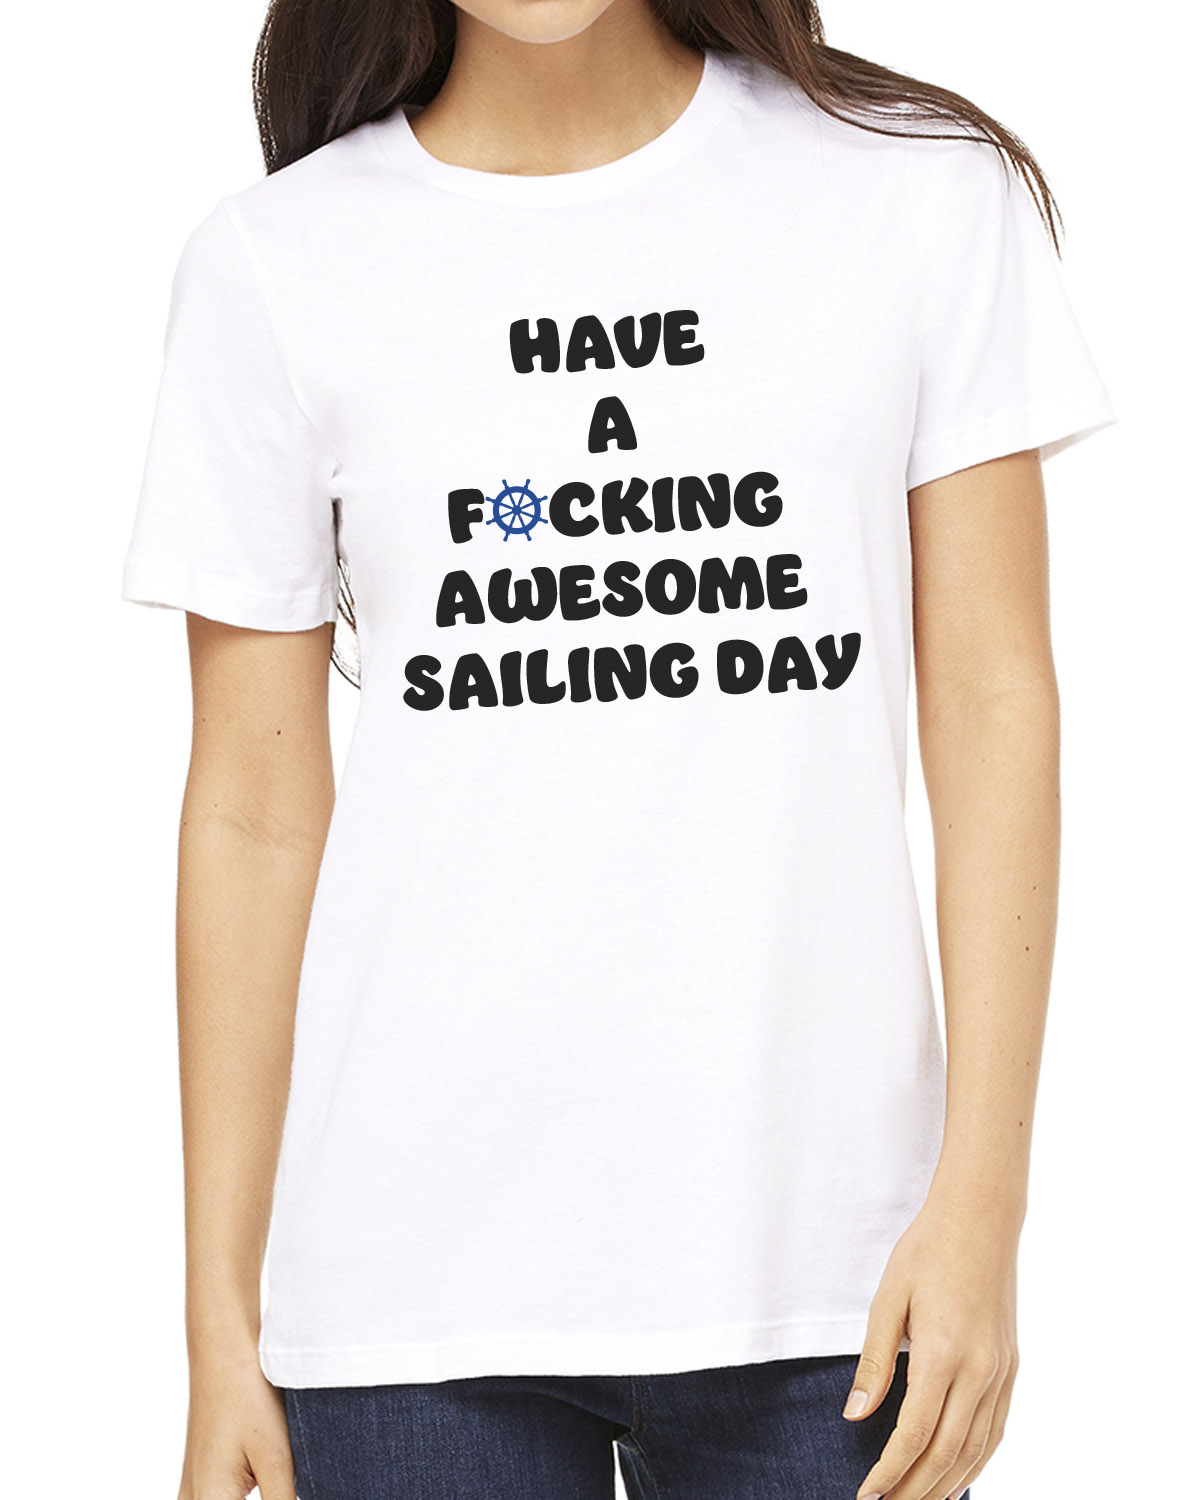 Women's Have a F*cking Awesome Sailing Day t-shirt (white)